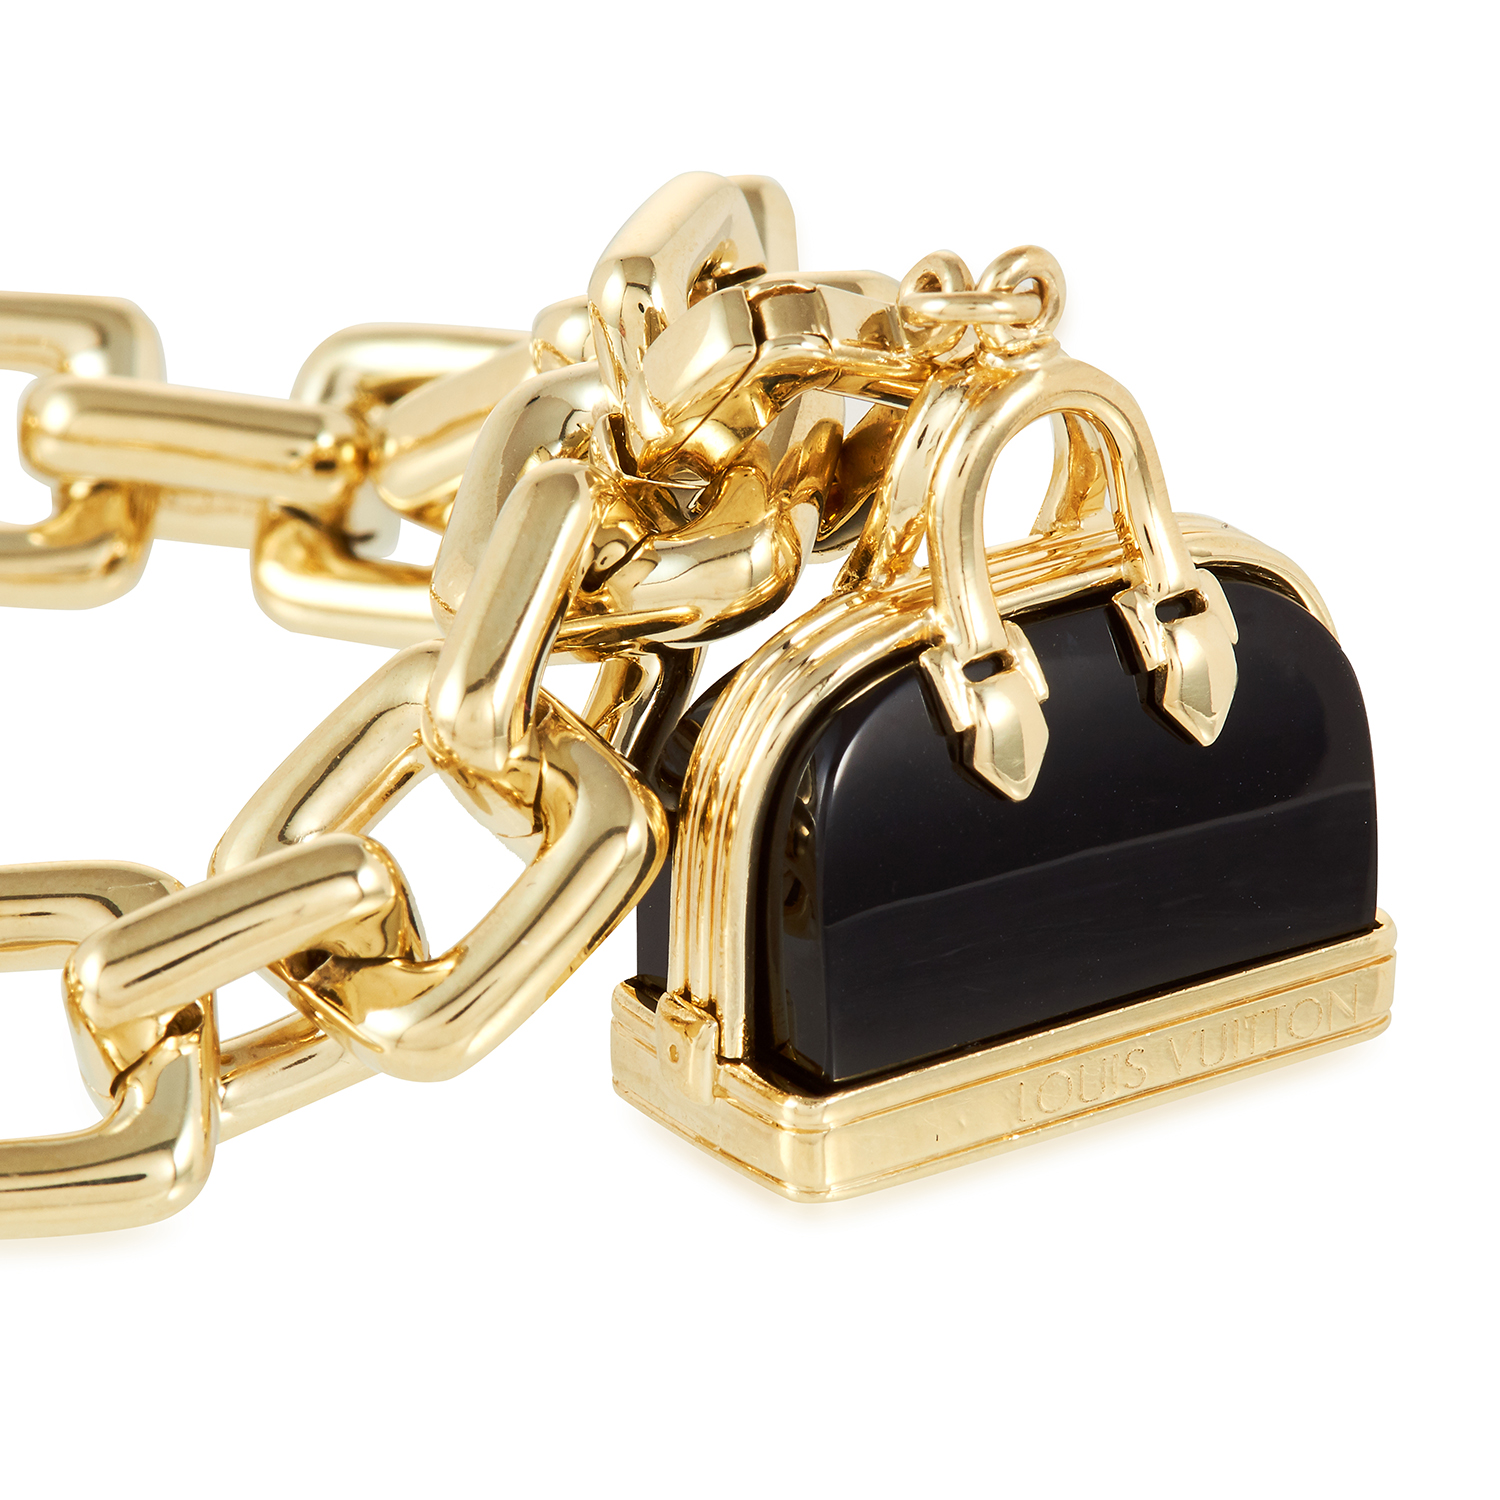 Los 19 - AN ONYX CHARM BRACELET, LOUIS VUITTON in 18ct yellow gold, set an with onyx handbag charm, a padlock